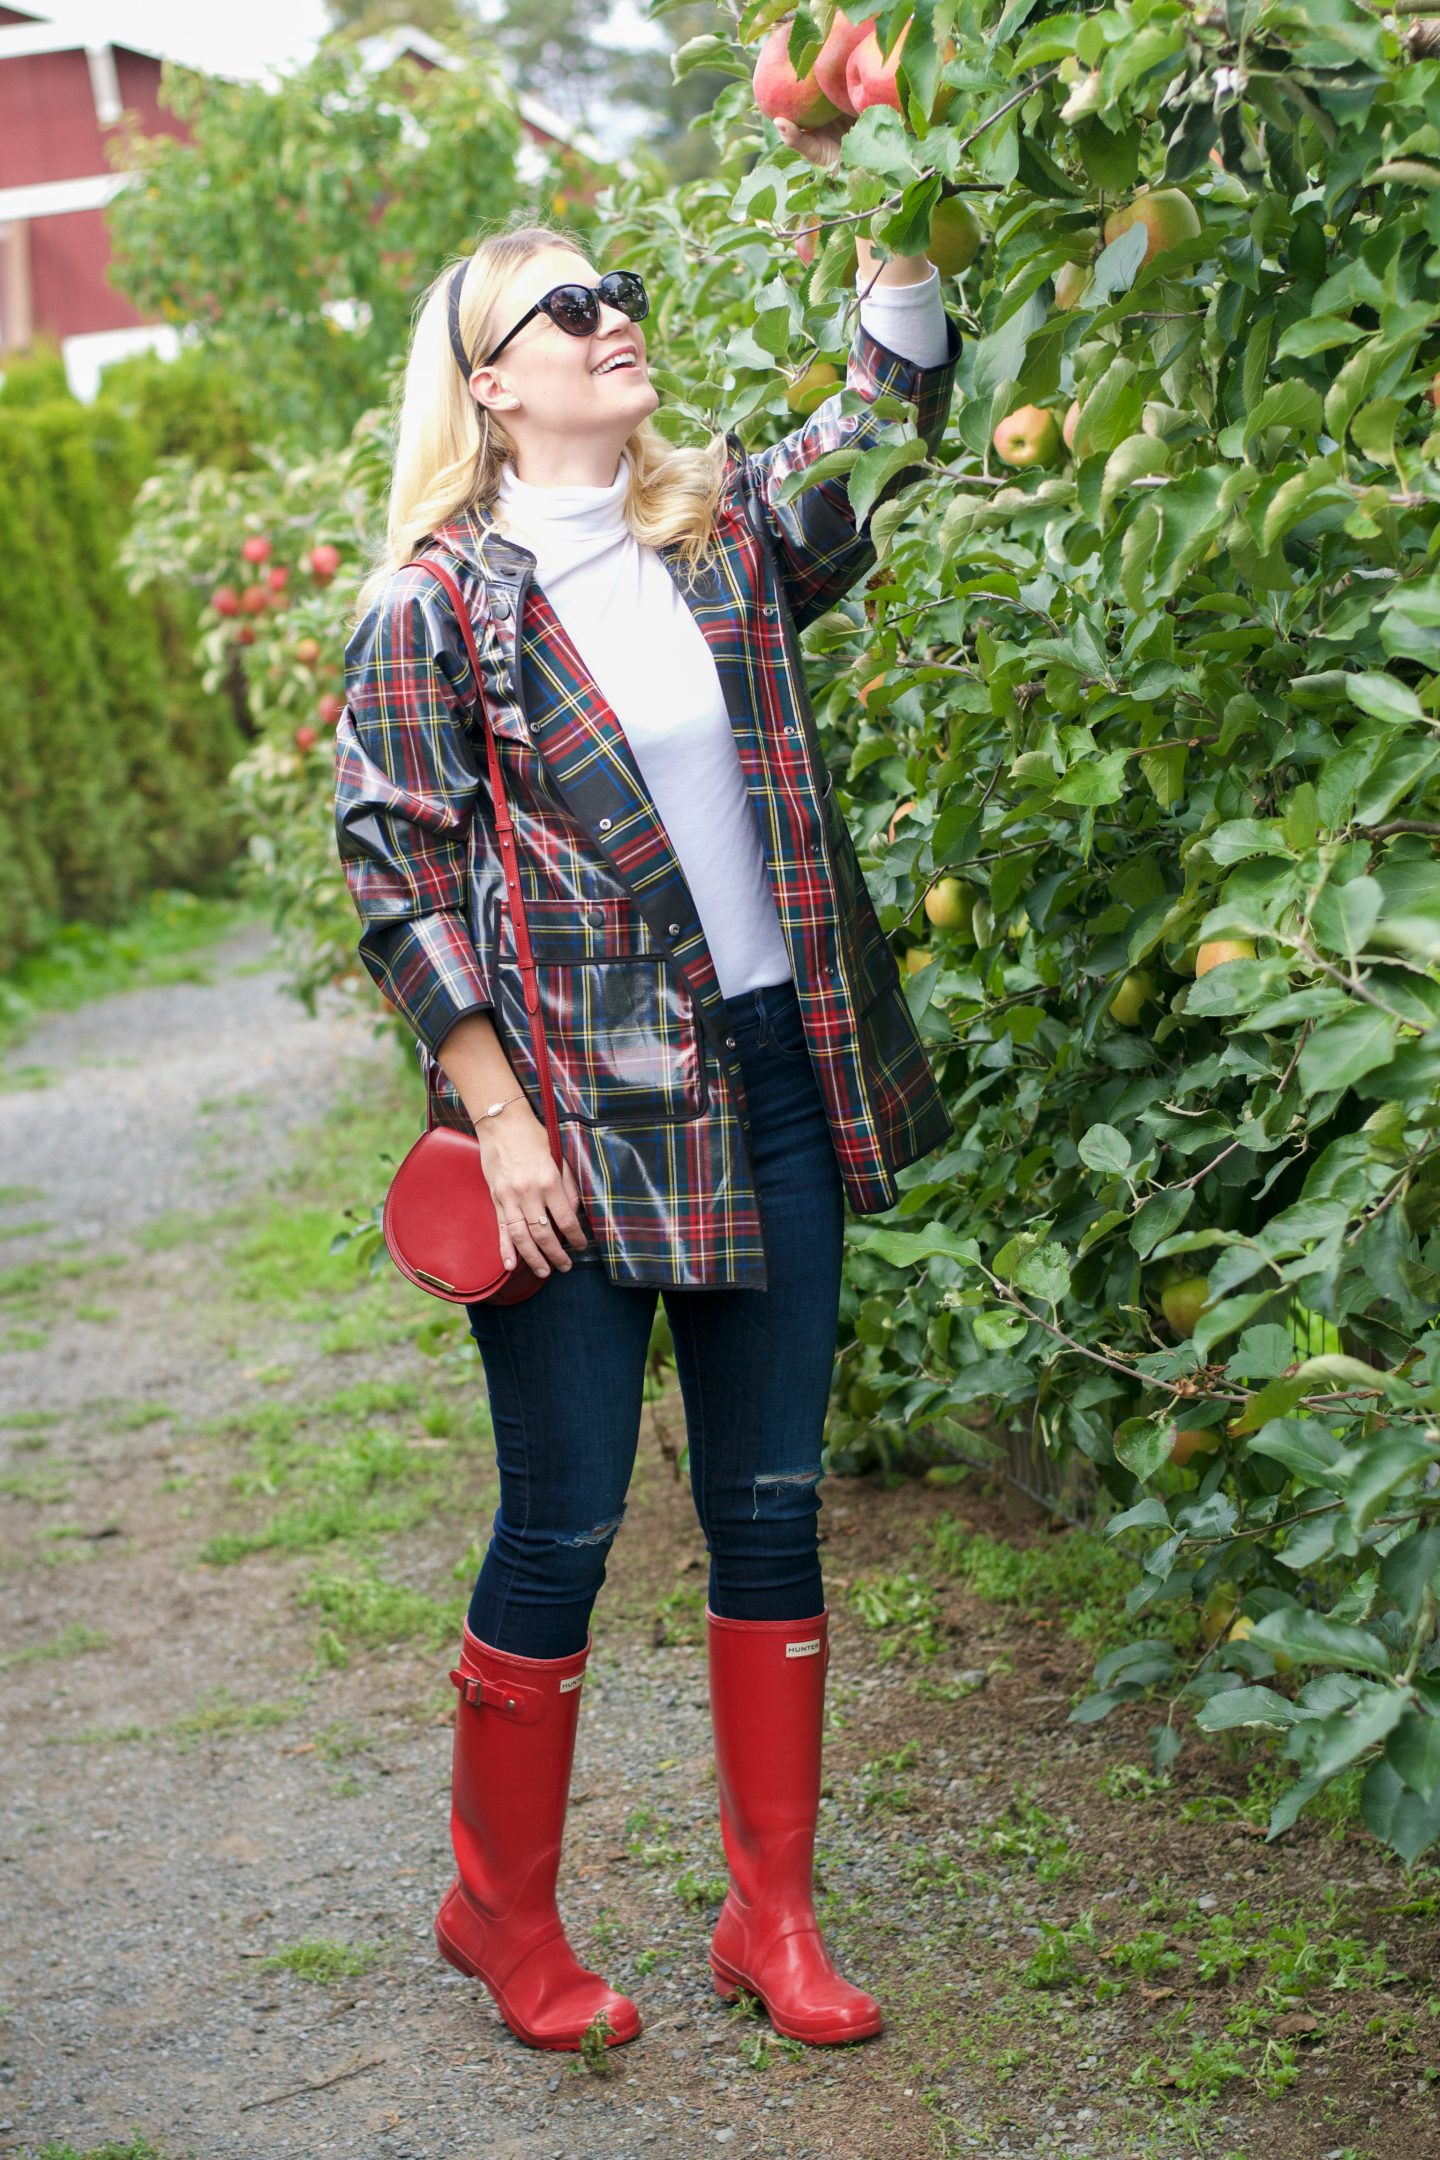 plaid raincoat apple picking hunter boots | zara plaid raincoat hunter boots | Fall Activities by popular Seattle lifestyle blog, Whit Wanders: image of a woman in a apple orchard and wearing a Zara plaid rubberized rain coat, white turtle neck, jeans, and red Hunter rain boots.